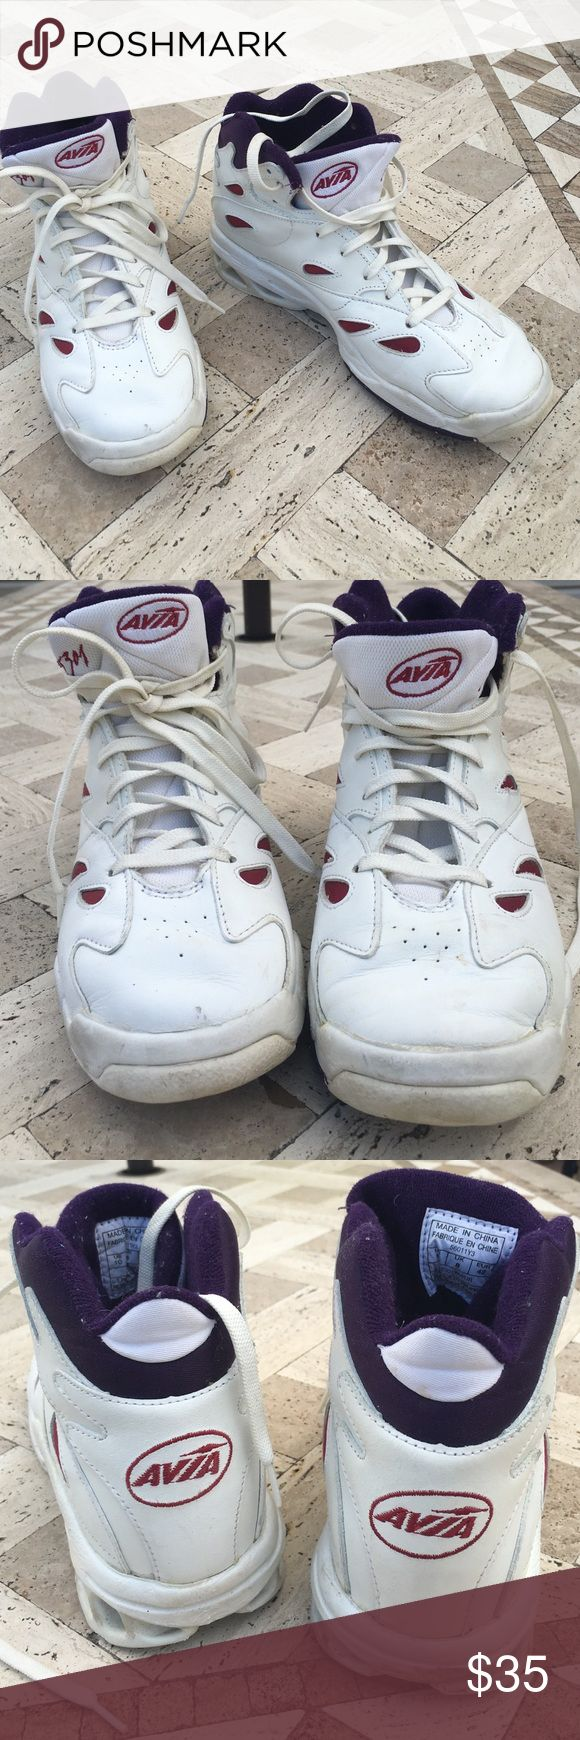 AVIA high tops Bought for aerobics, gently worn a few times &  then hurt my knee. Marked USA size 10/ EURO size 42. White leather with cushioned purple interior & trim Avia Shoes Sneakers